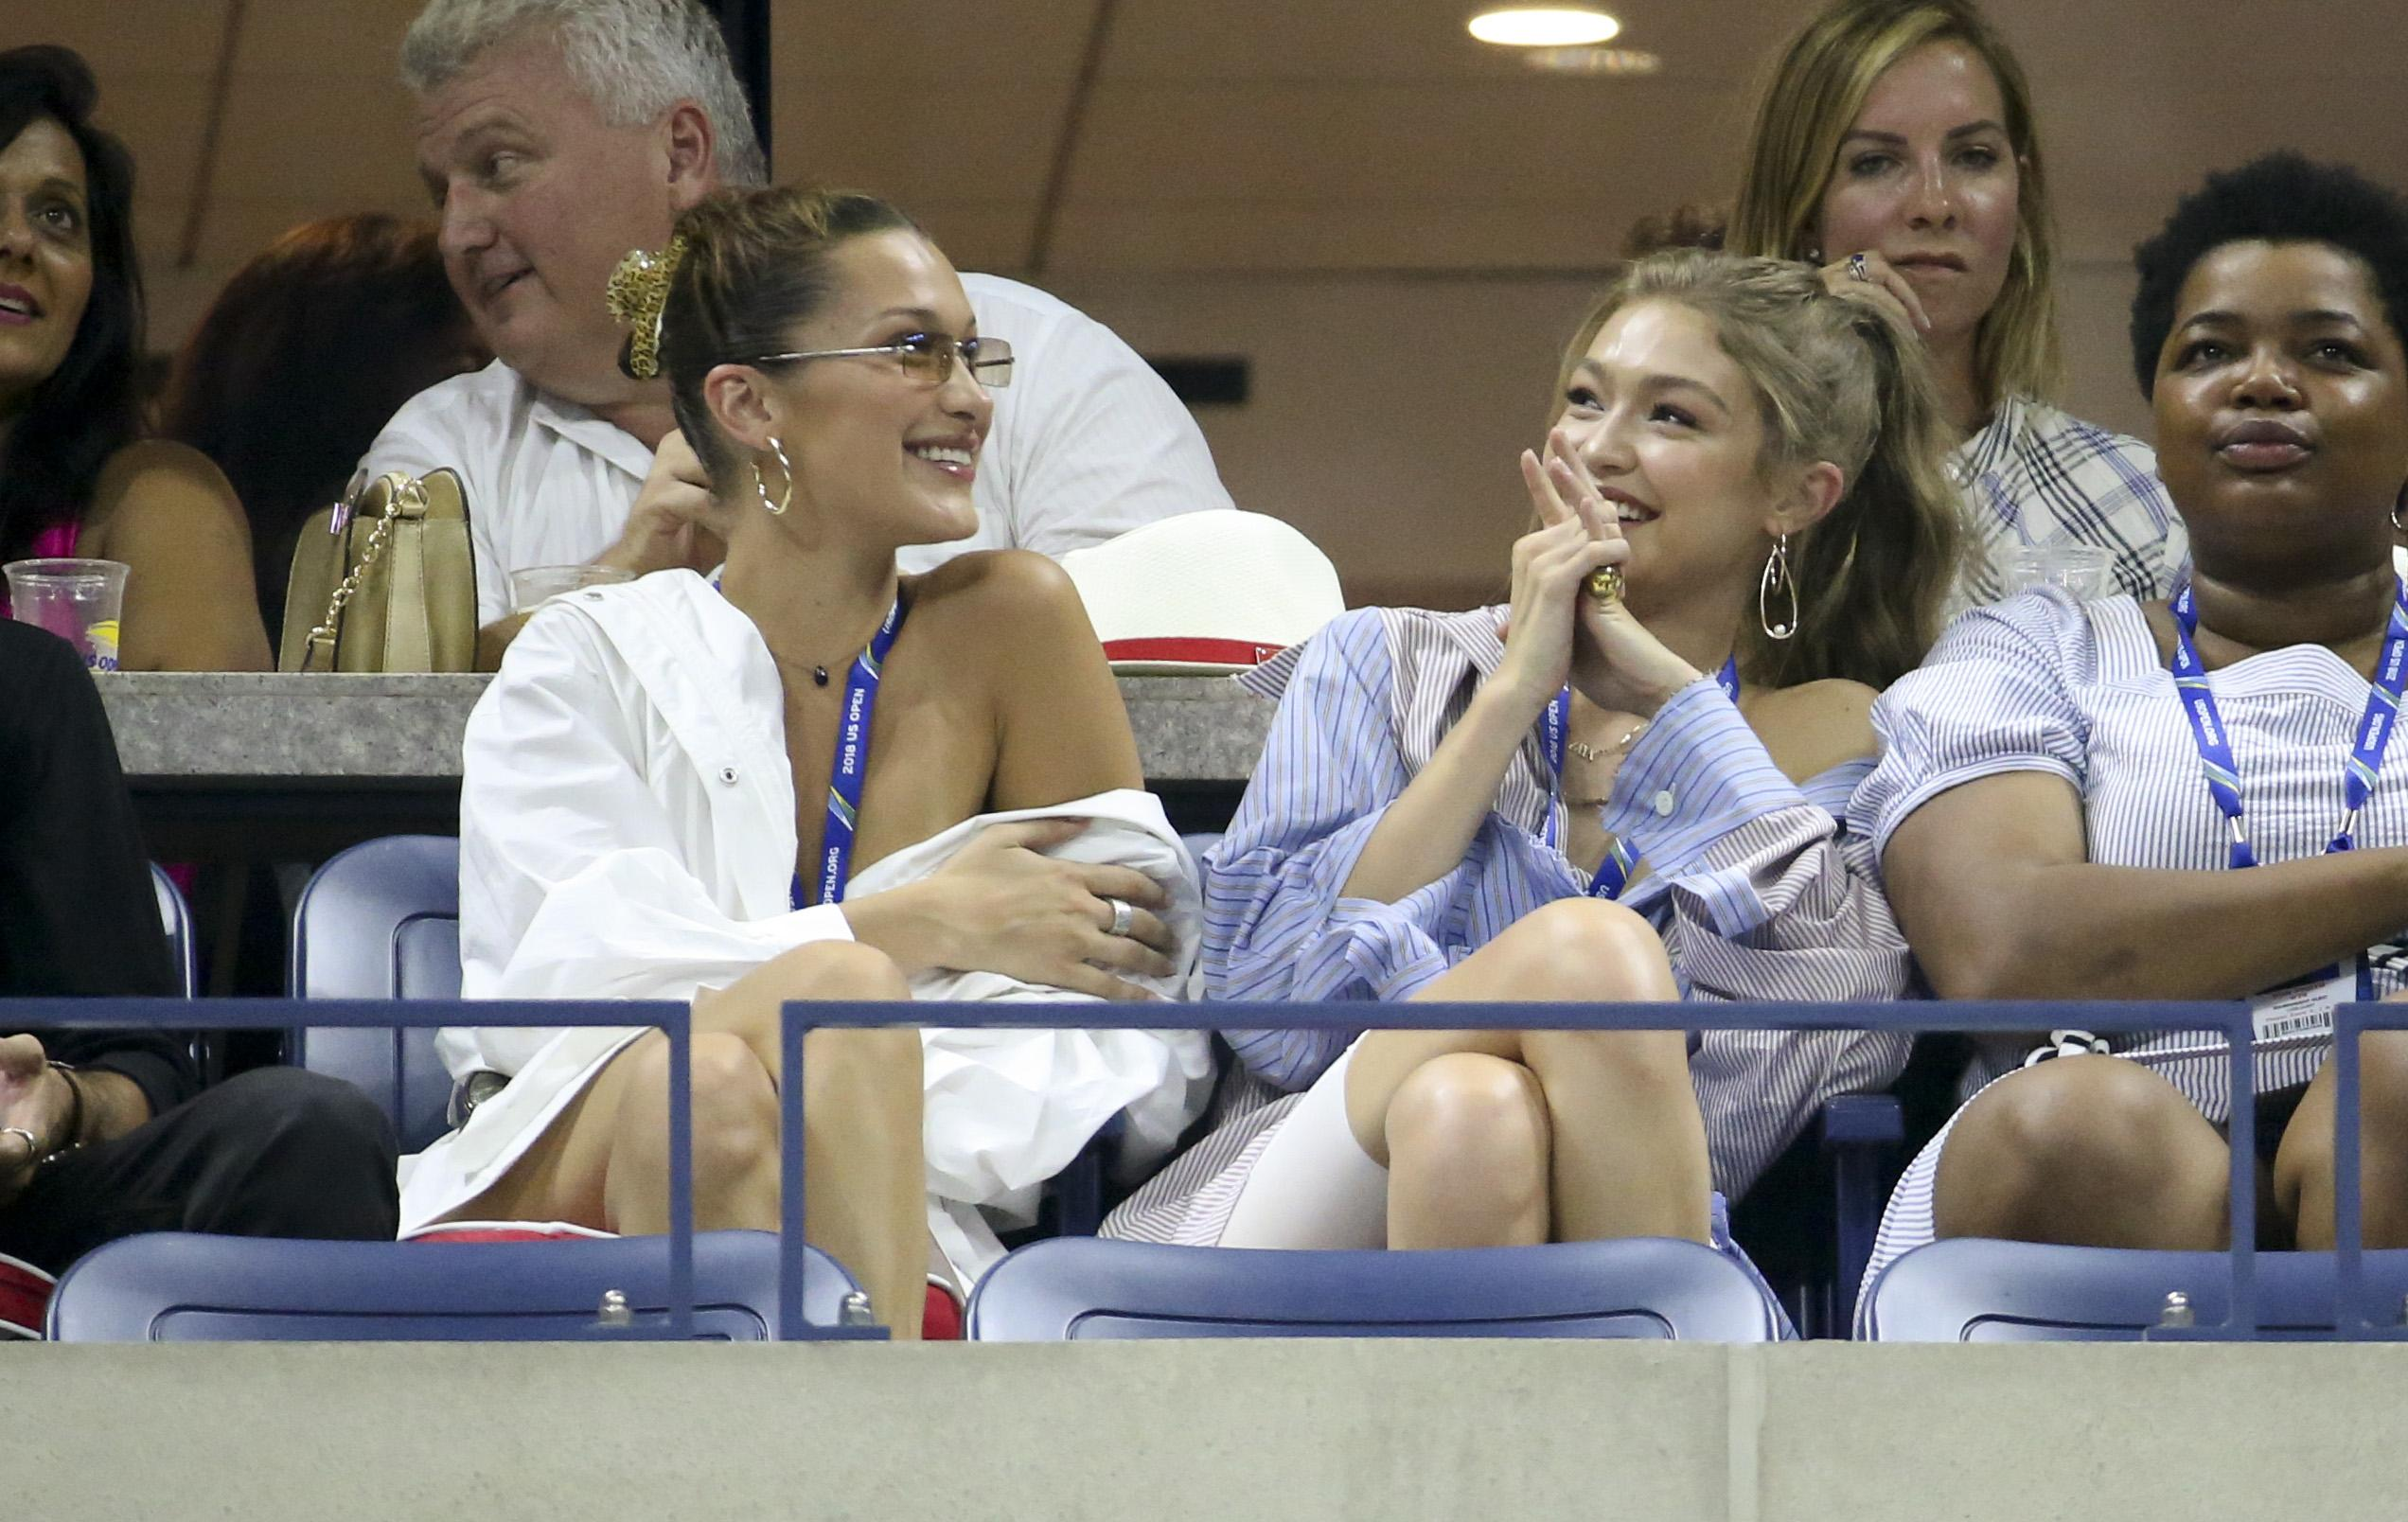 Model sisters Bella and Gigi Hadid were in the stands at the US Open